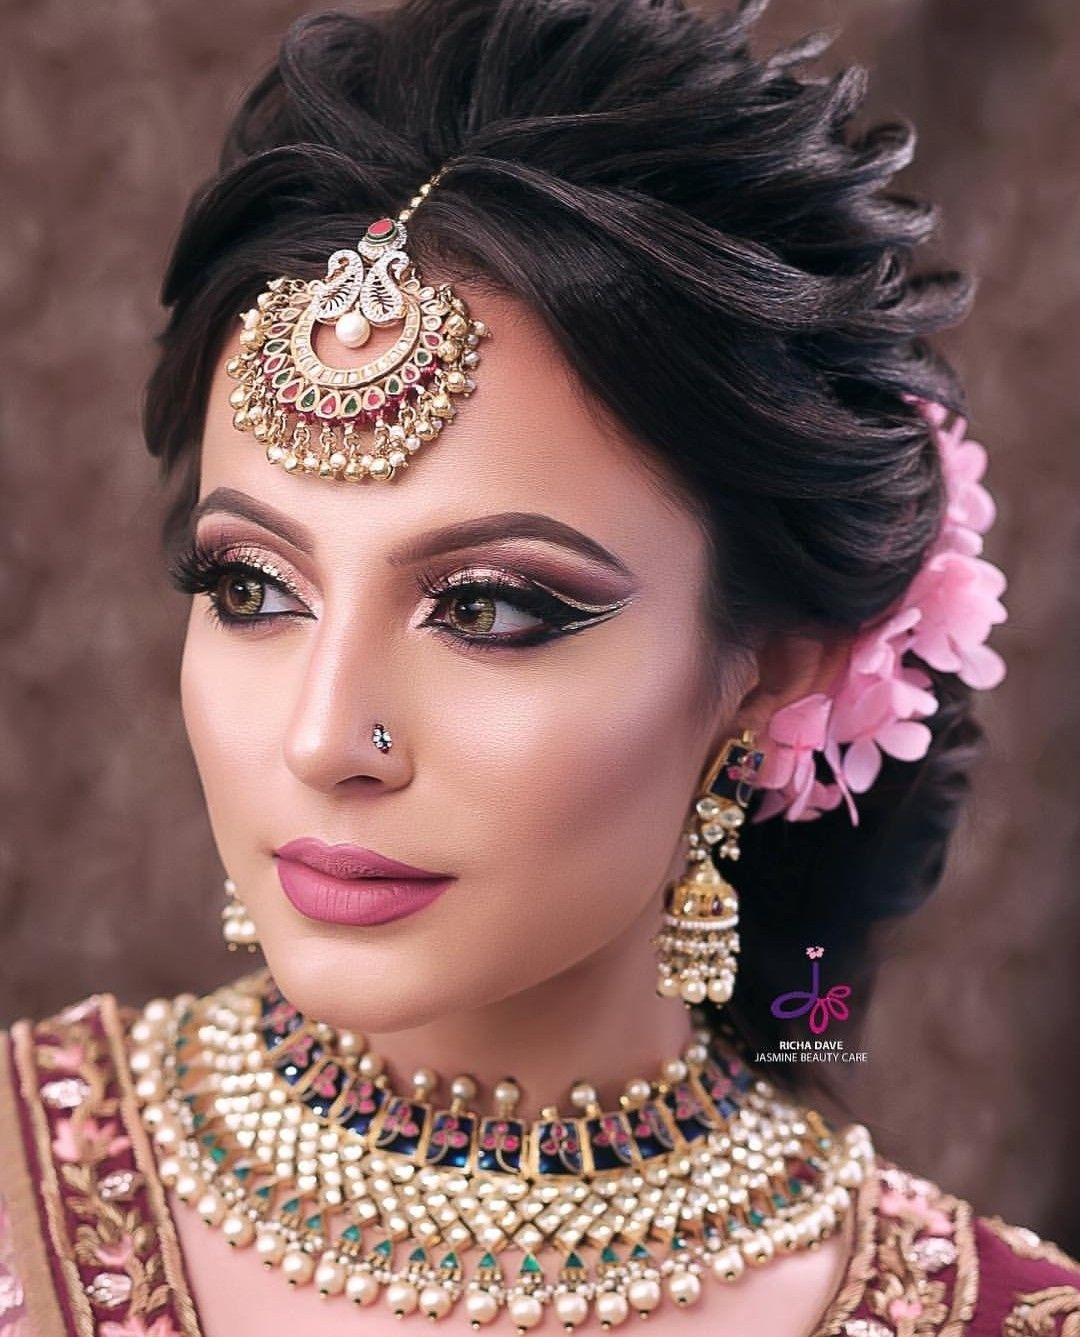 Shikachand | Indian Wedding Hairstyles in Indian Wedding Day Makeup Pictures